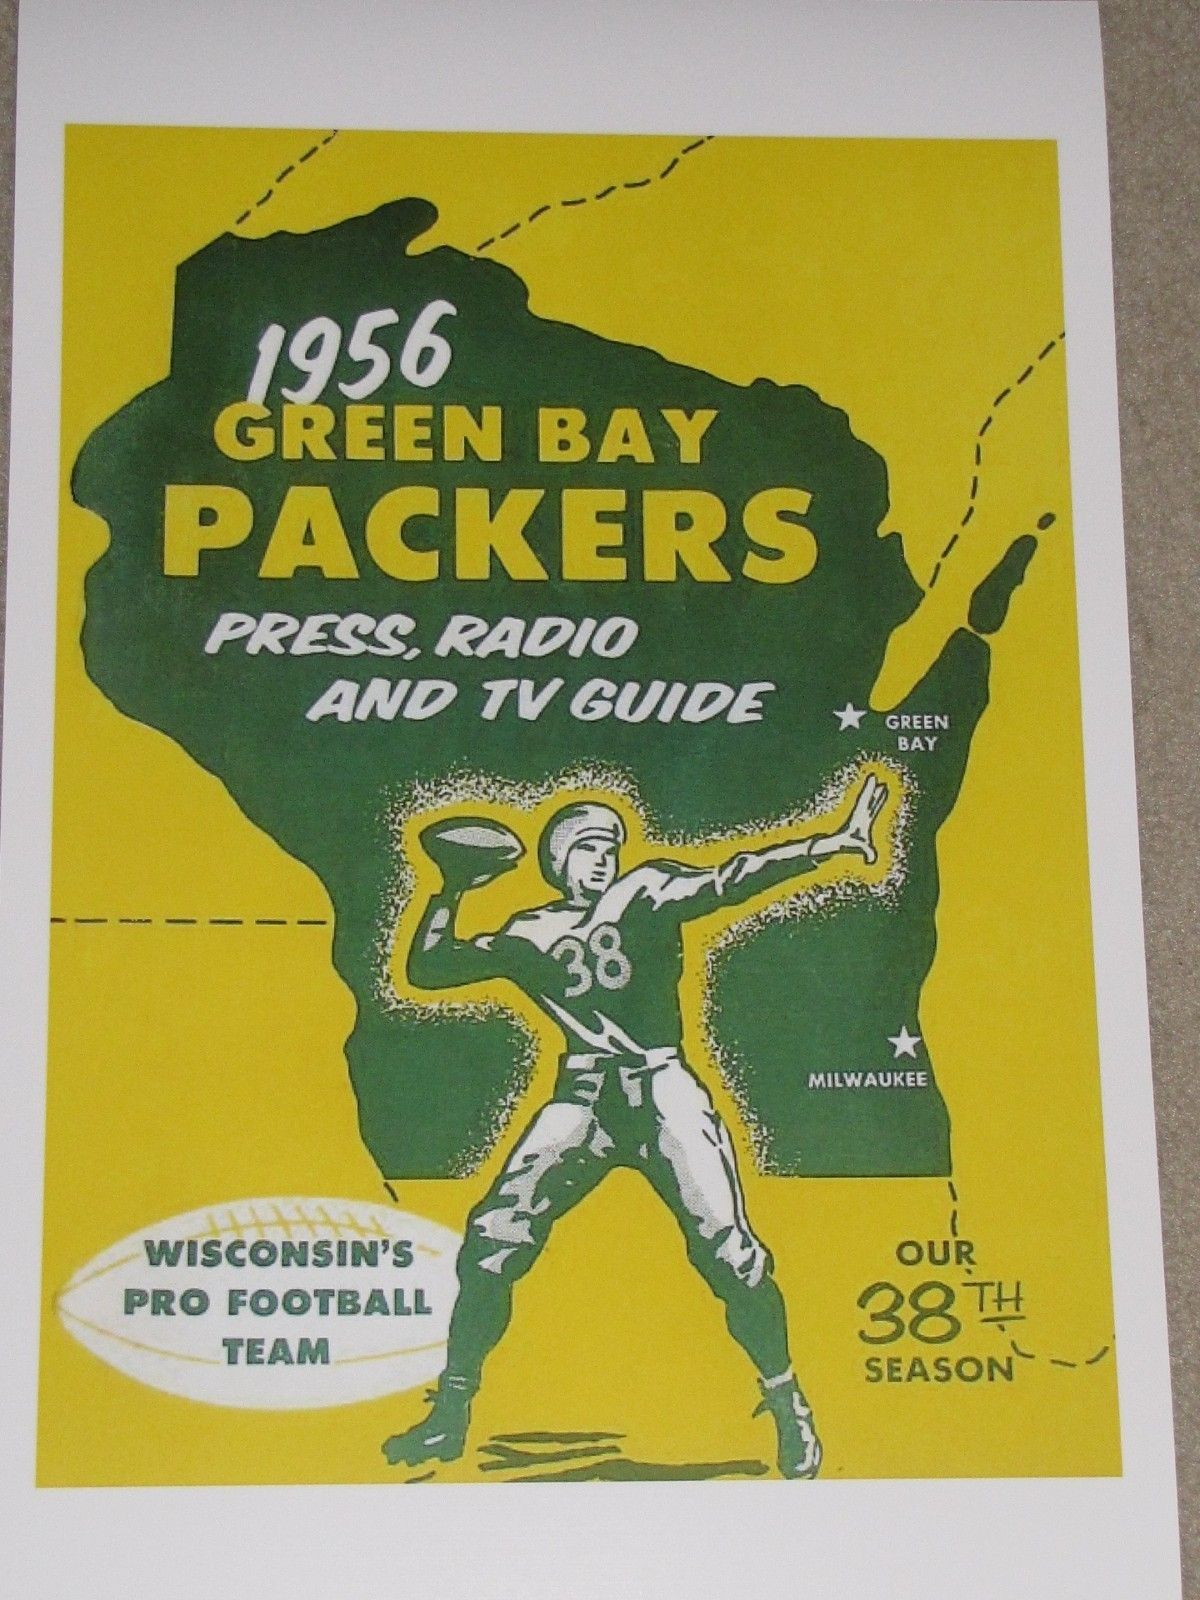 1956 Green Bay Packers Poster Lambeau Field Vince Lombardi Bart Starr Green Bay Packers Green Bay Green Bay Packers Fans